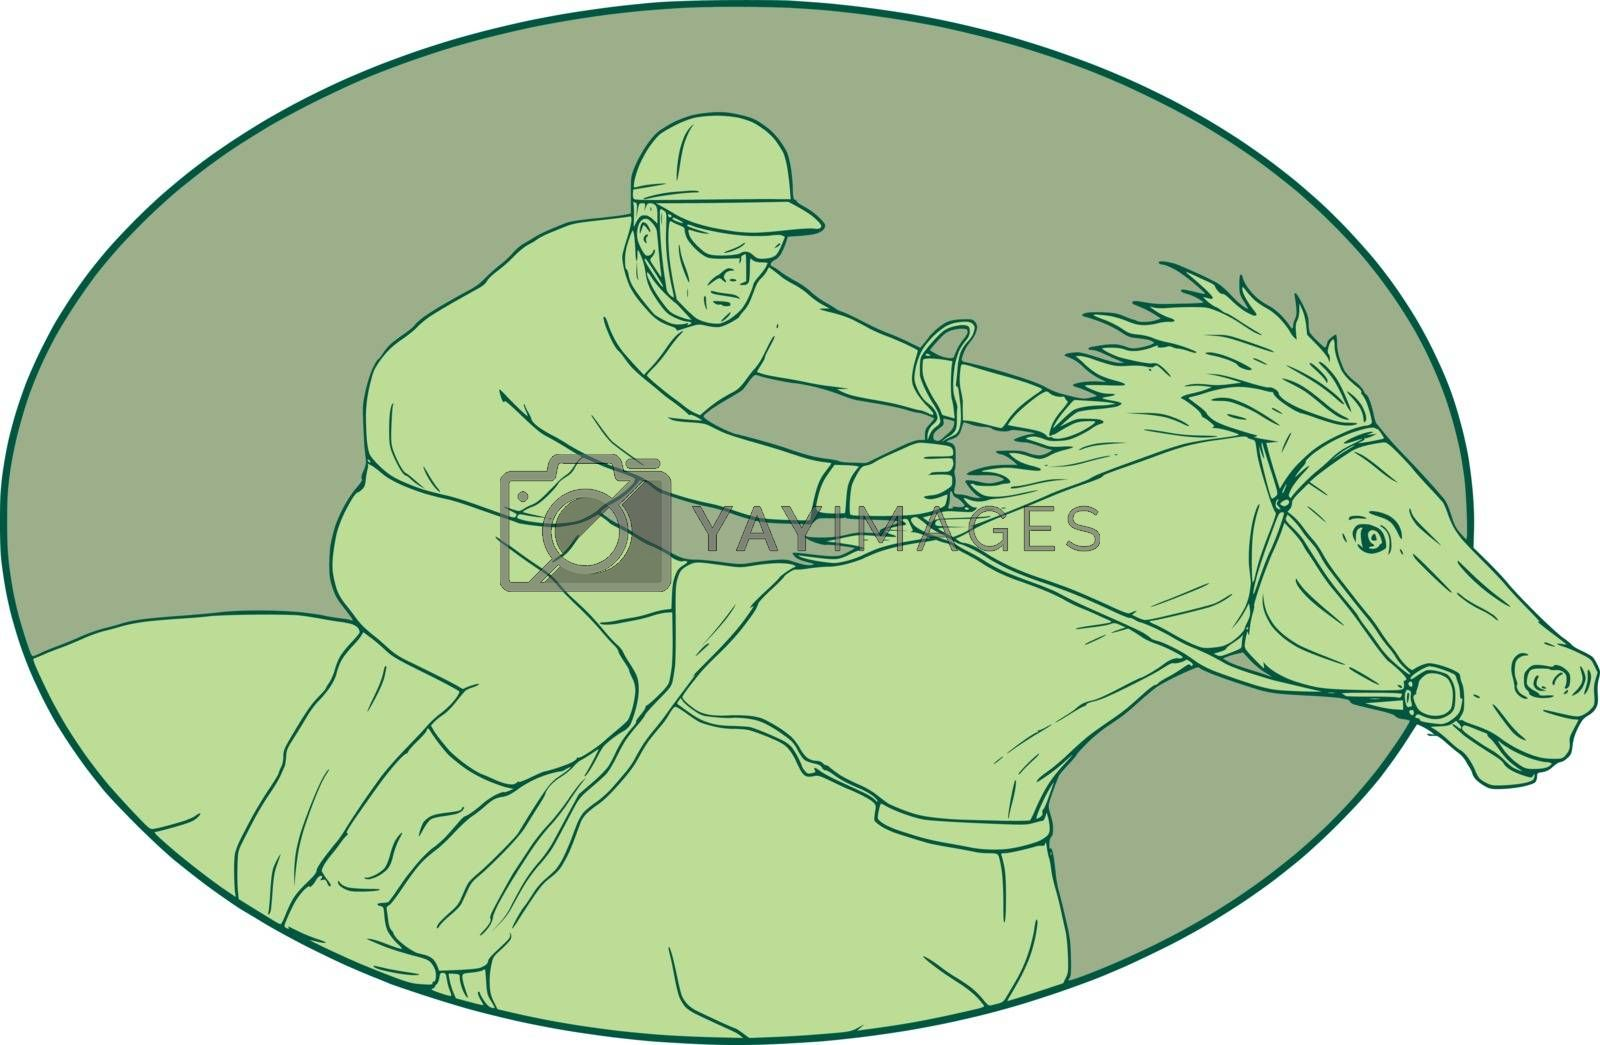 Drawing sketch style illustration of jockey riding a horse racing viewed from the side set inside oval shape on isolated background.